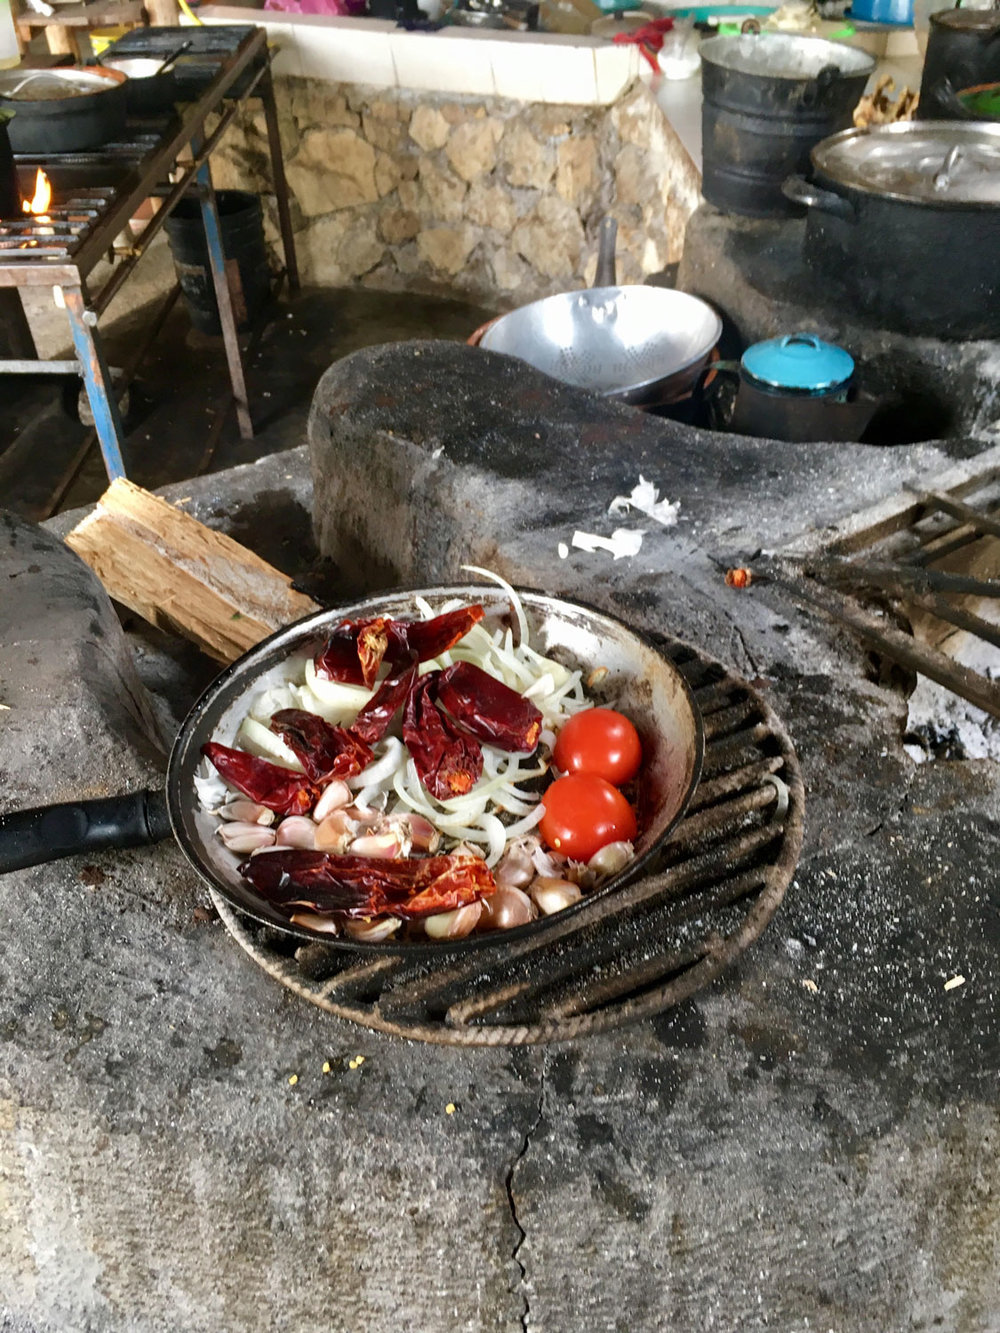 Esmeralda slowly roasts chili, garlic, onion and tomatoes on the open fire to prepare the ingredients.